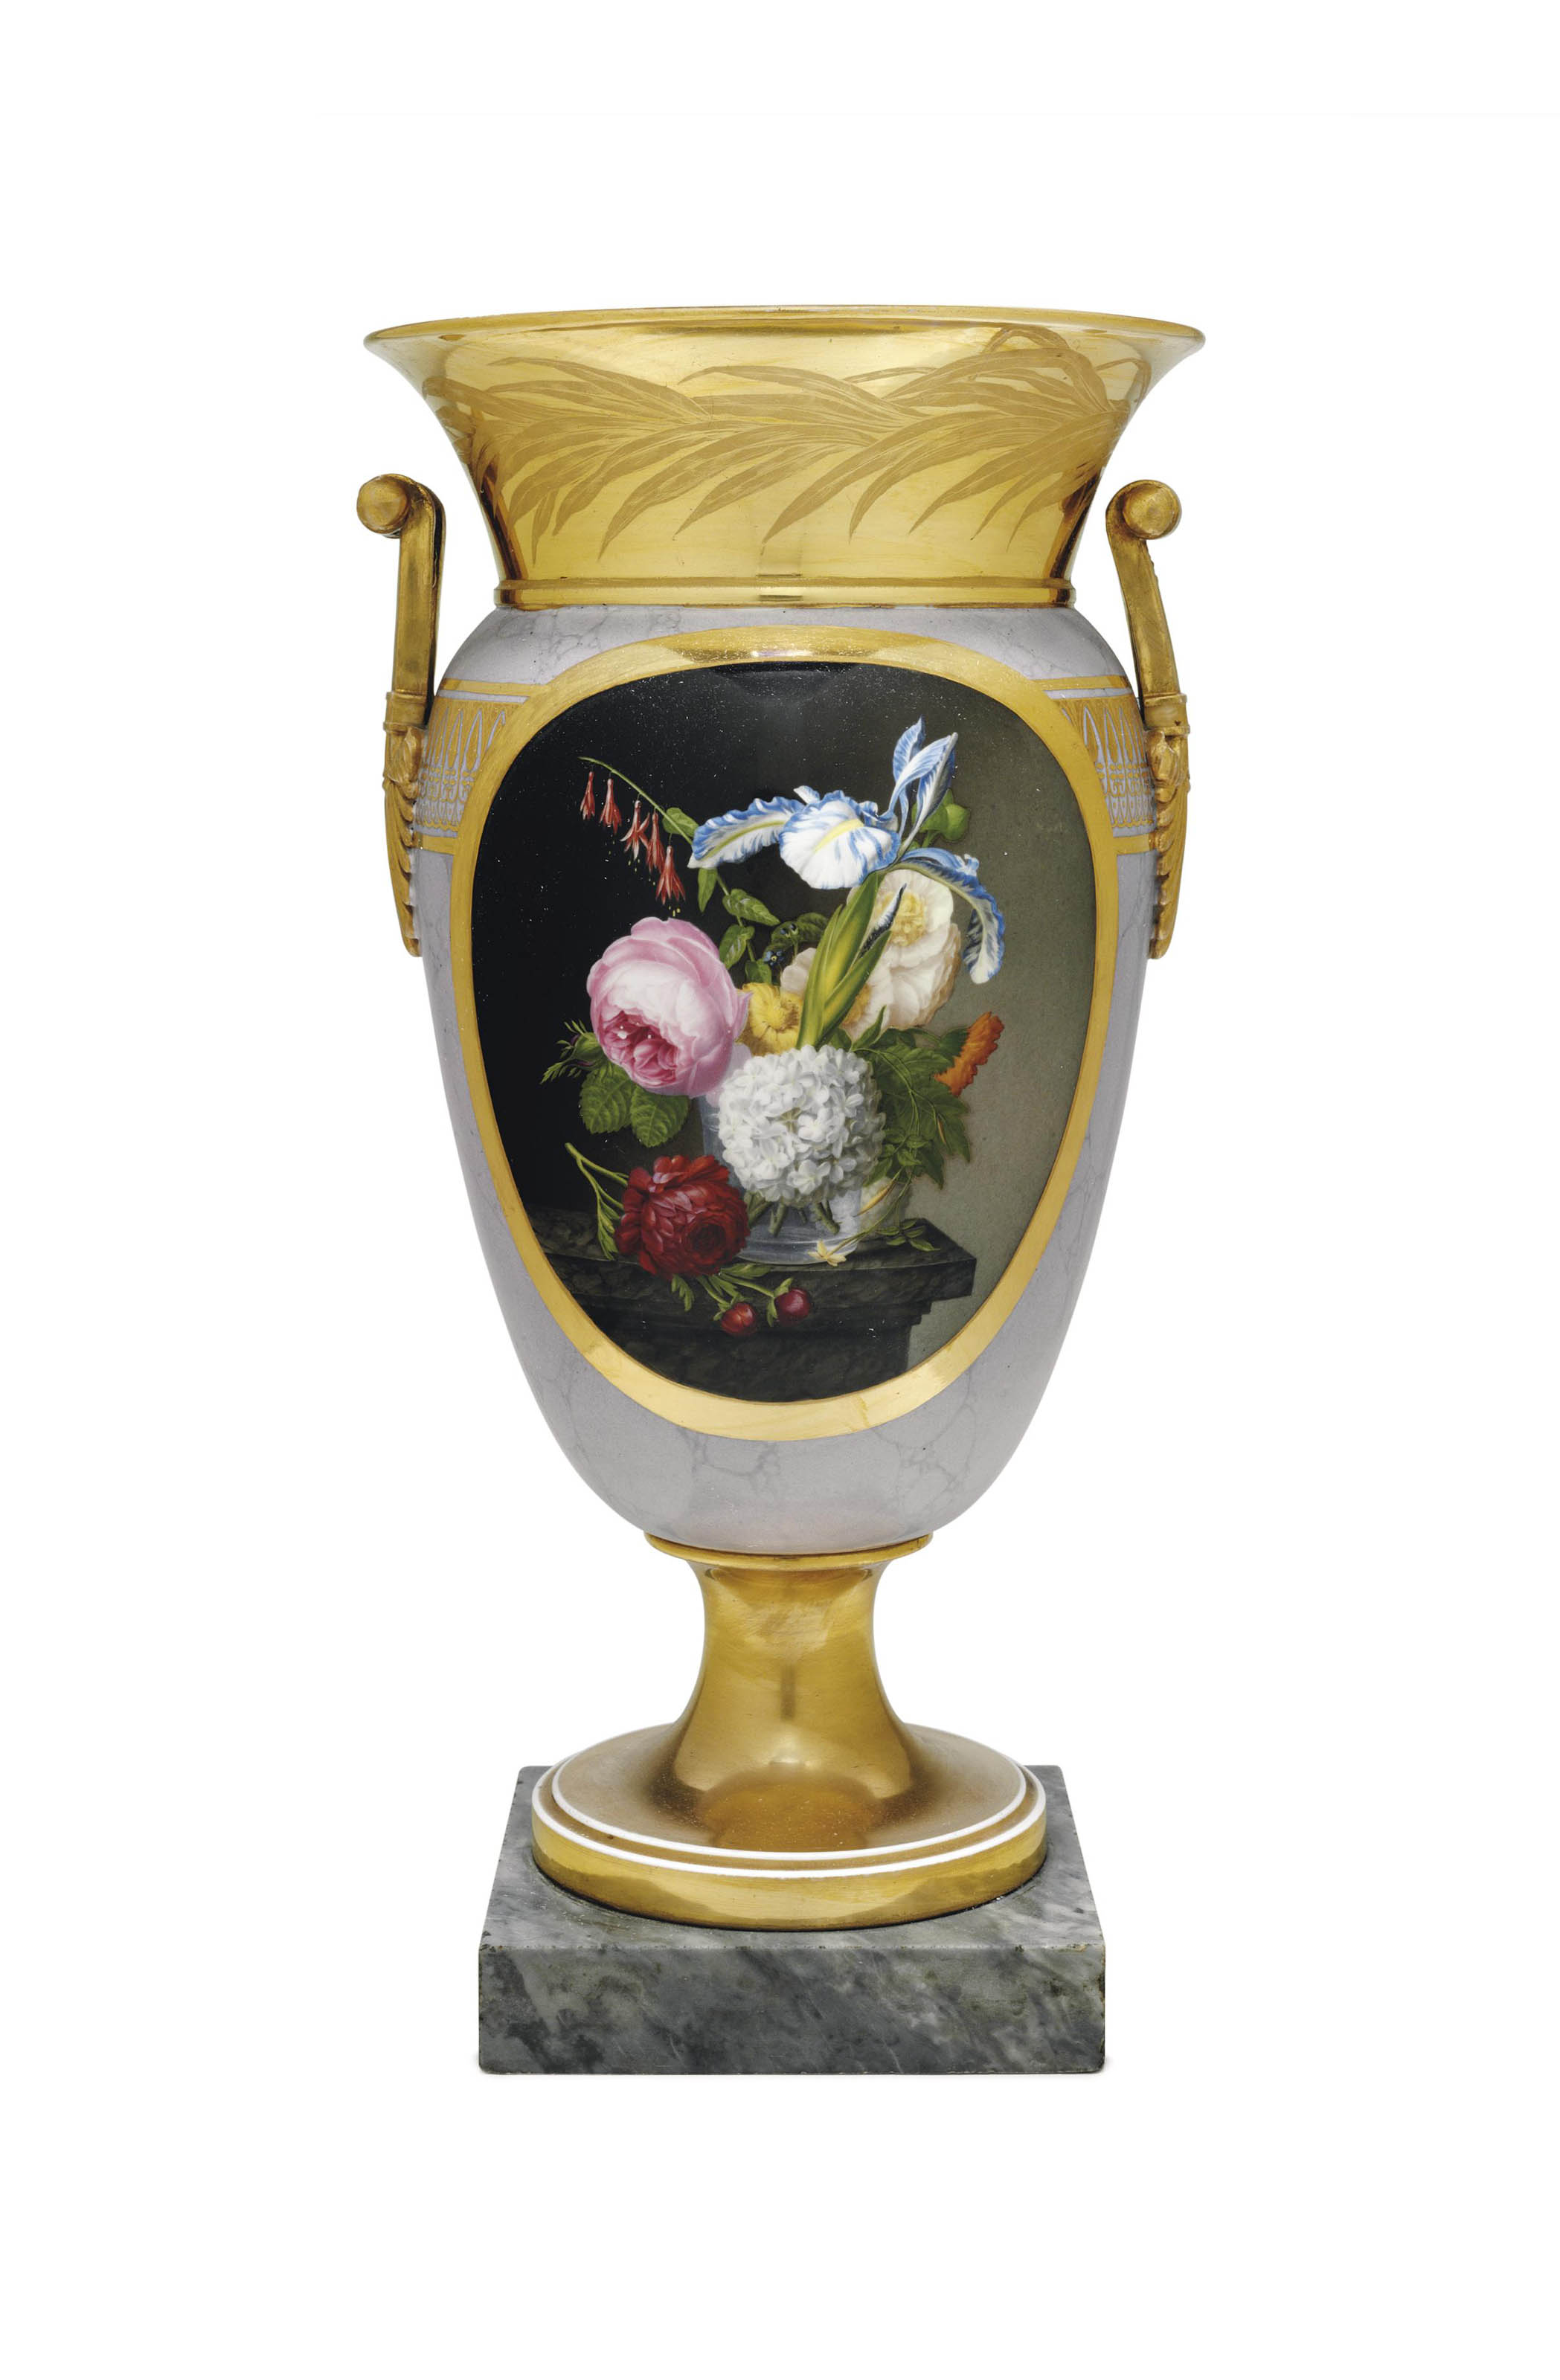 A PARIS (DAGOTY) PORCELAIN GOLD AND FAUX-LAVENDER MARBLE GROUND VASE